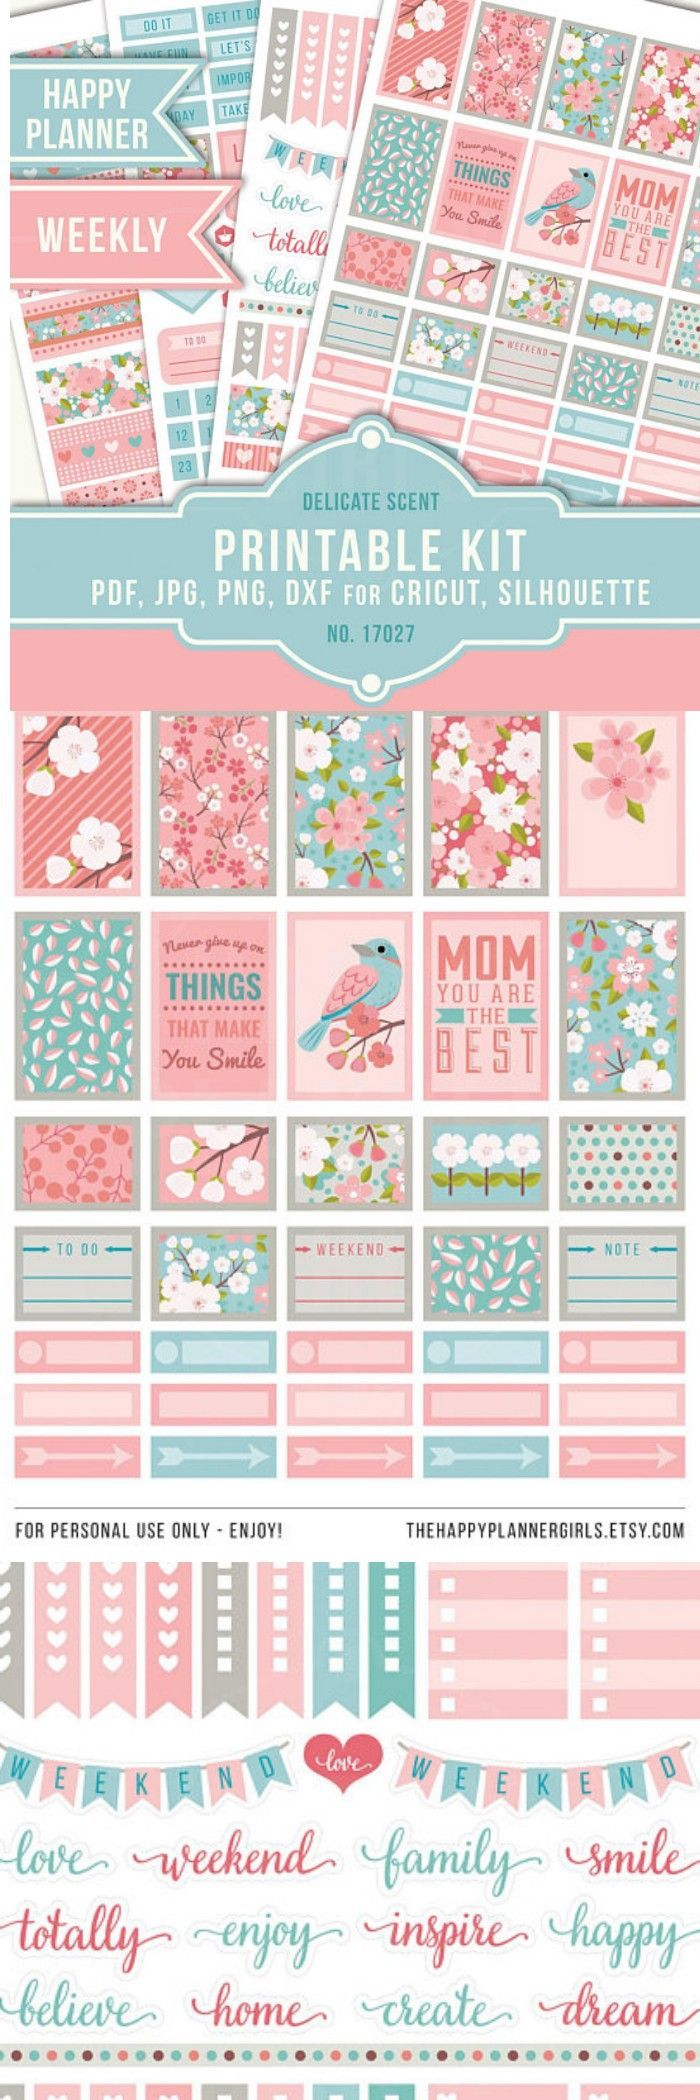 These PRINTABLE planner stickers are perfect for the MAMBI Happy Planner Classic but of course they can be used in other type of planners as well (Filofax, Kikki K, Plum Paper Planner etc.). Printable Planner Stickers, May Weekly Kit, May Planner Stickers